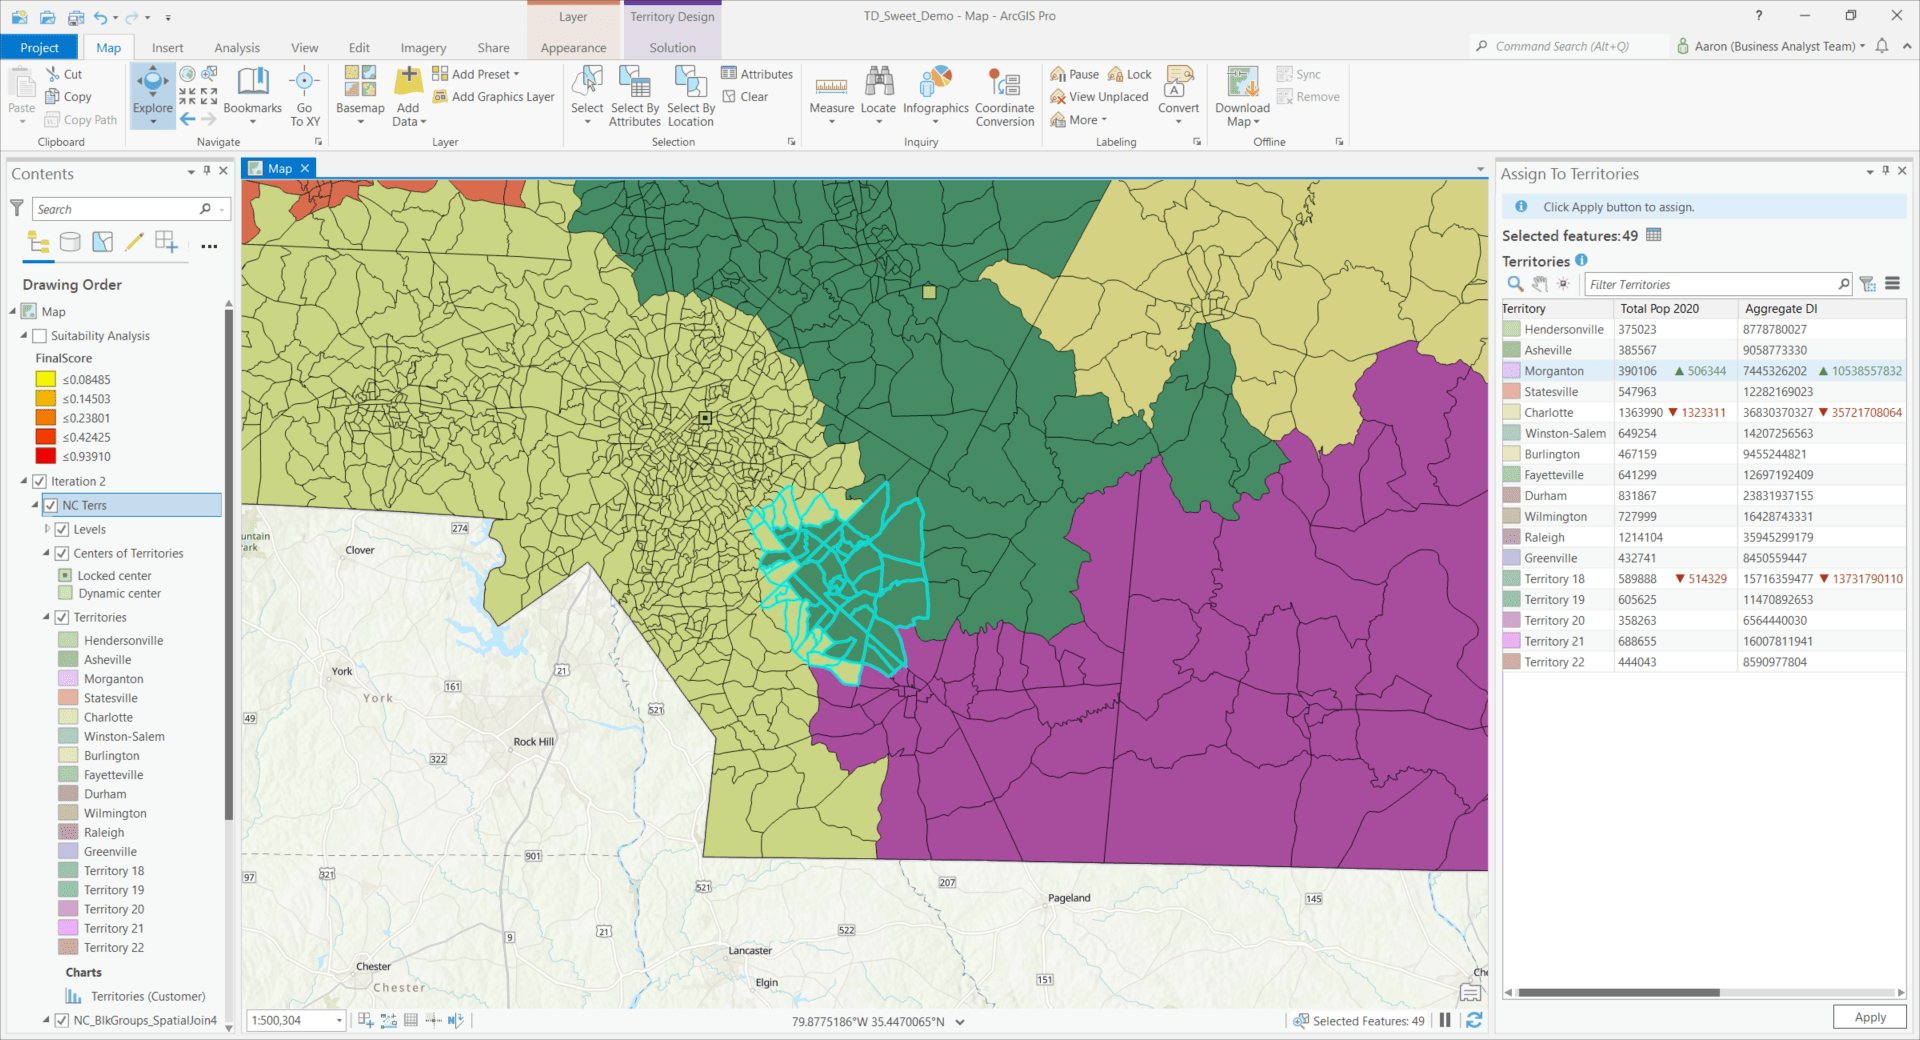 A multi-colored map highlighting the territory design panel in ArcGIS Business Analyst Pro.